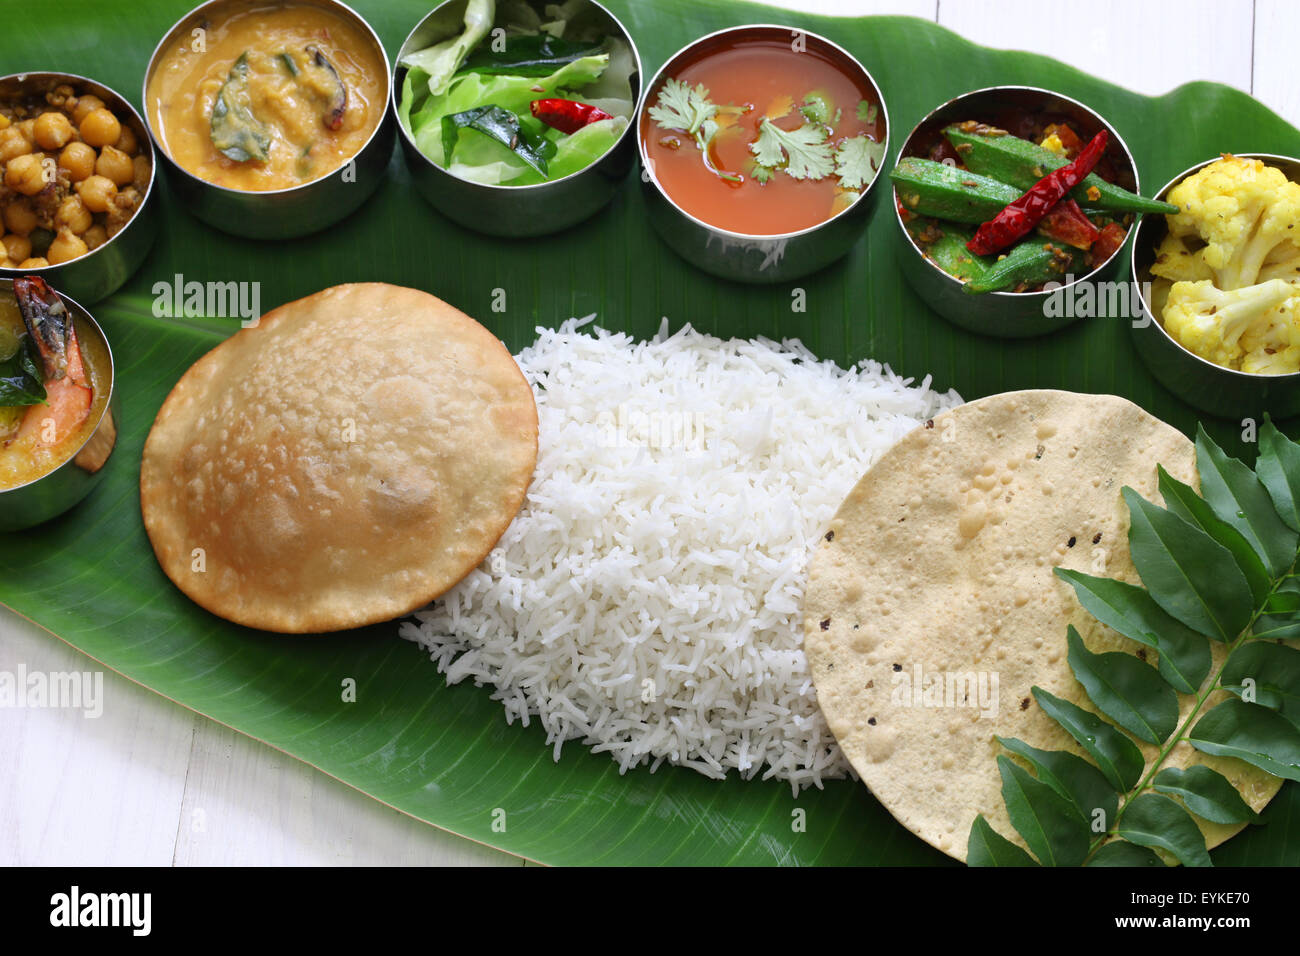 meals served on banana leaf, traditional south indian cuisine - Stock Image